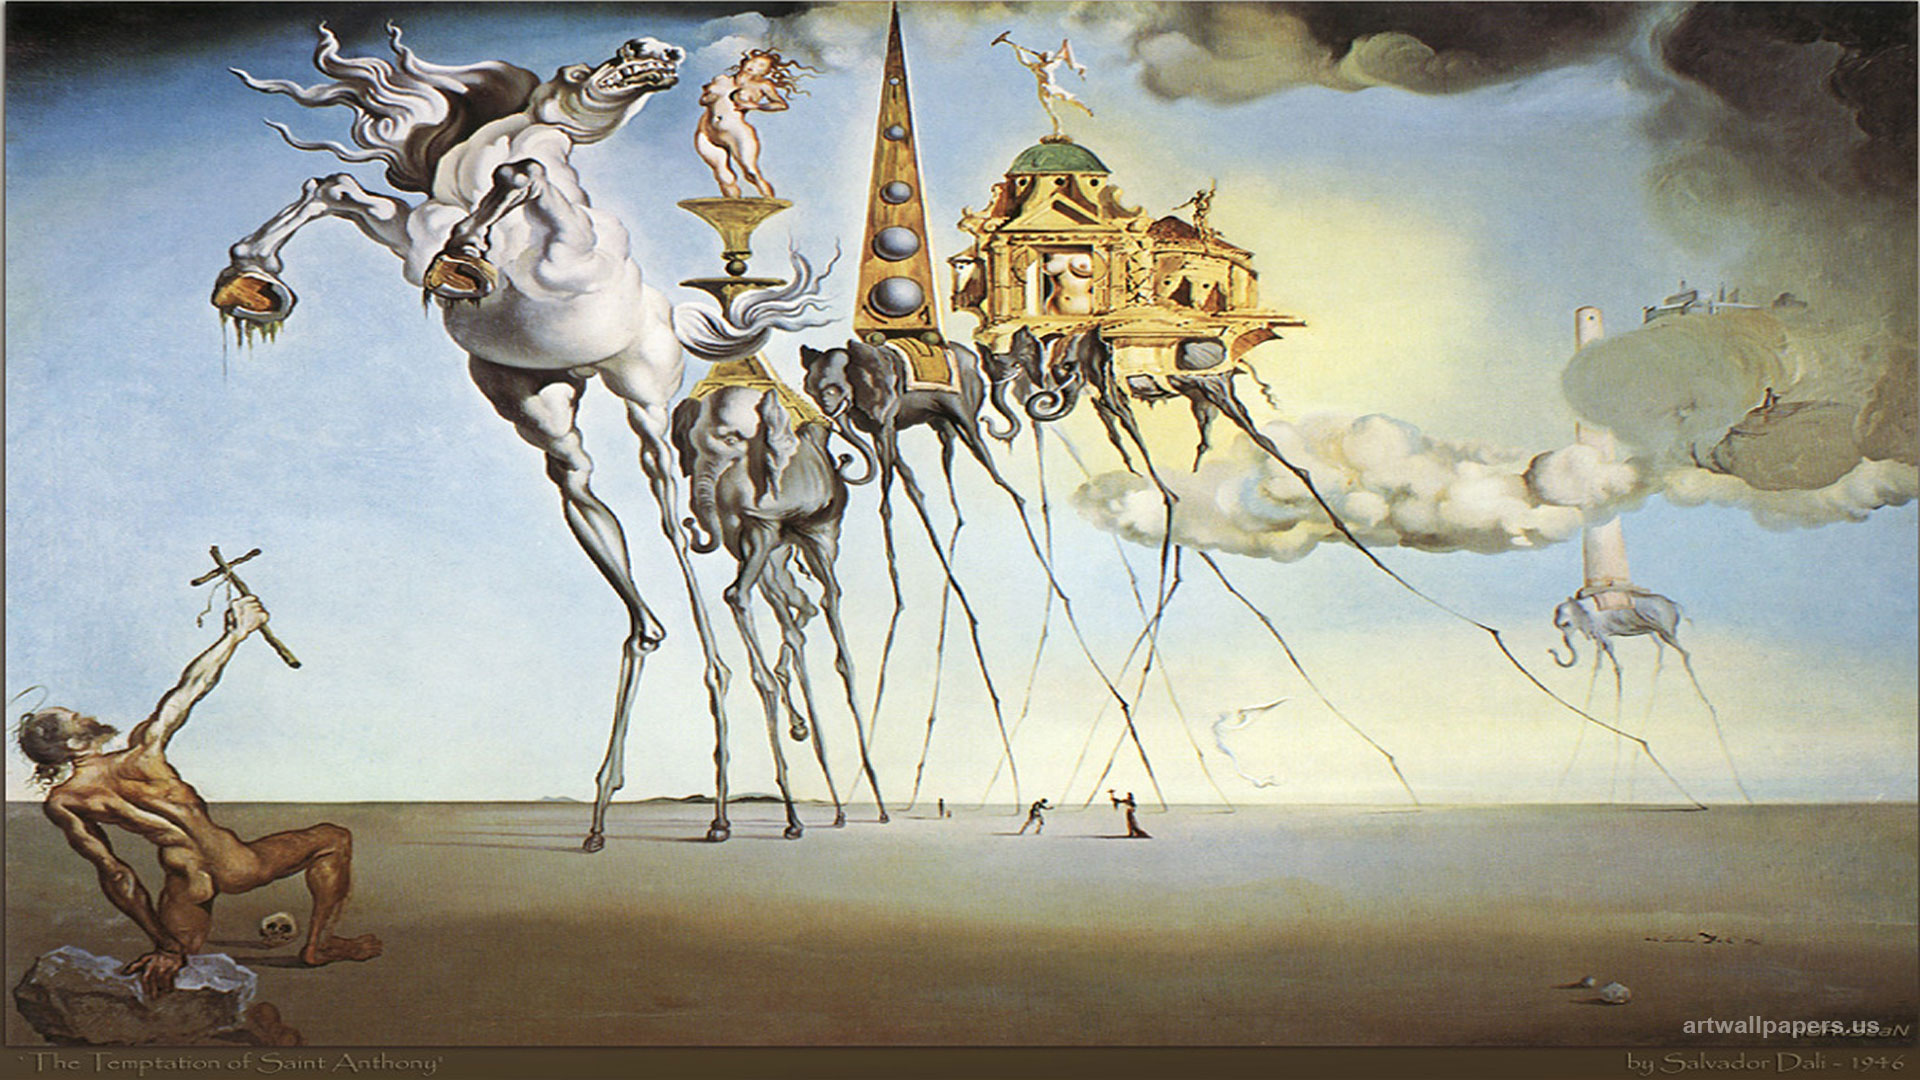 salvador dali influences Biography salvador dali salvador dali picasso was a significant influence on the young dali, and some of his early works were inspired by picasso's style.